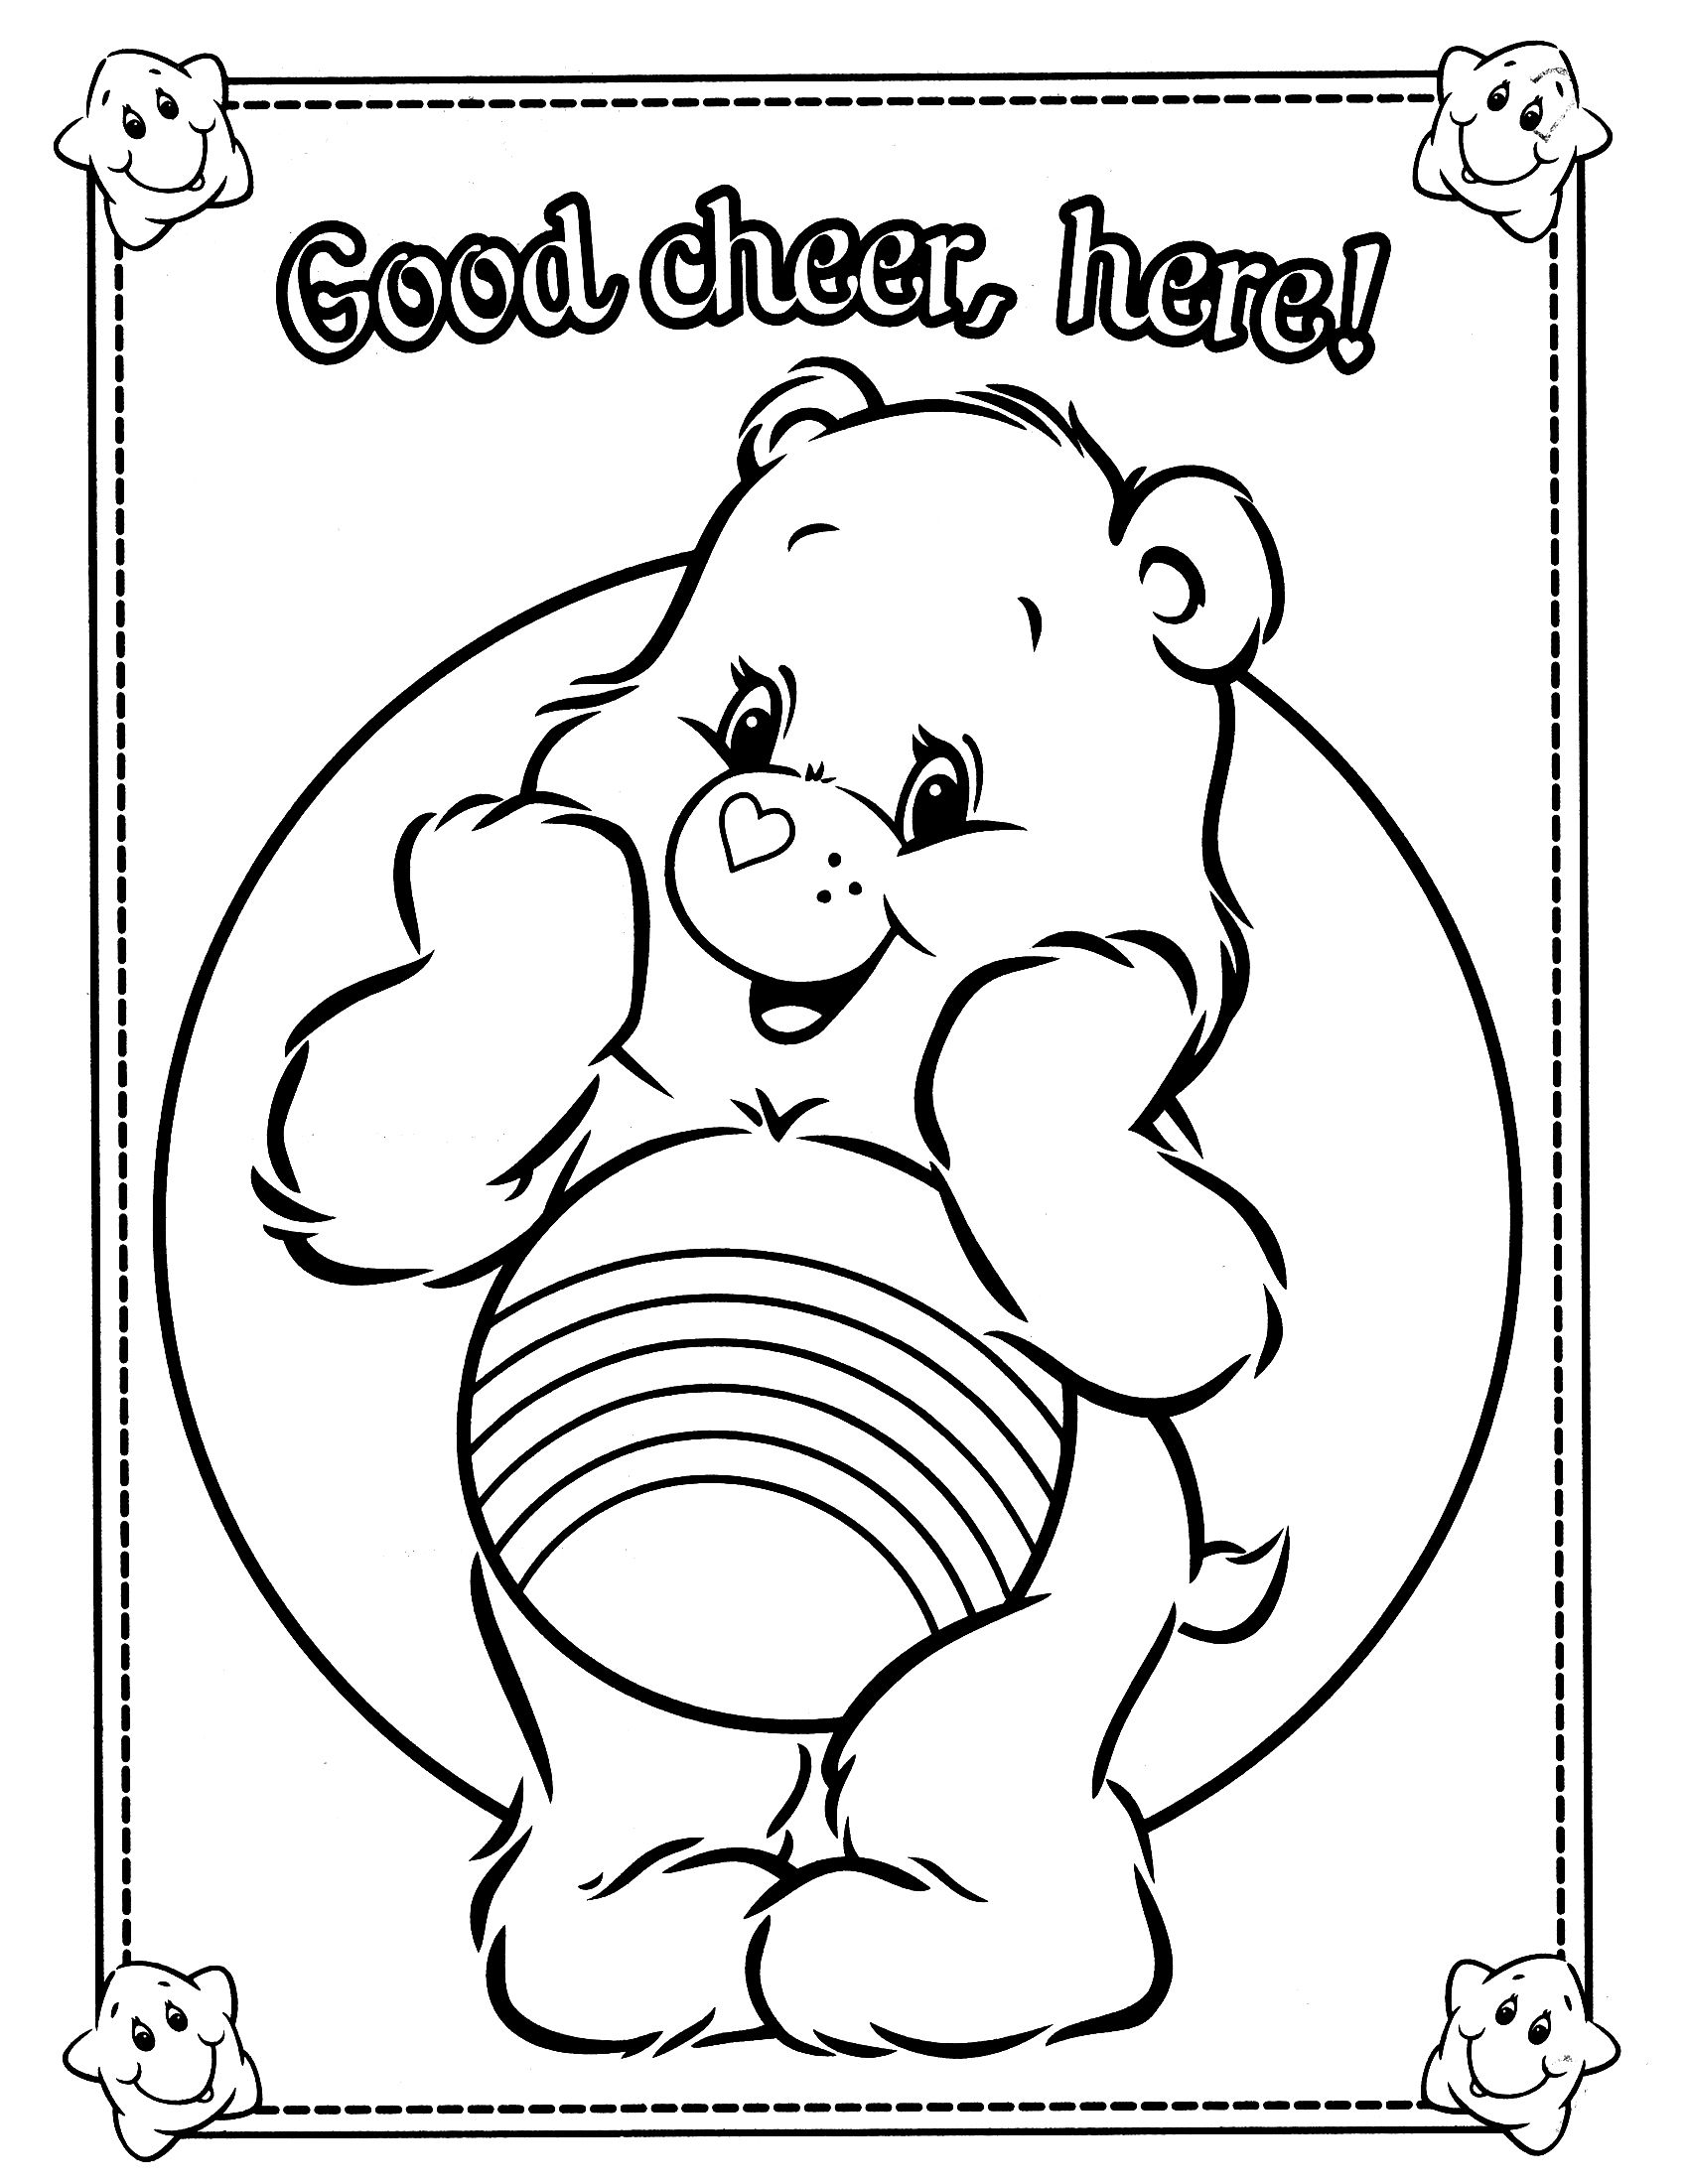 care bears coloring page | care bears & cousins | Pinterest ...